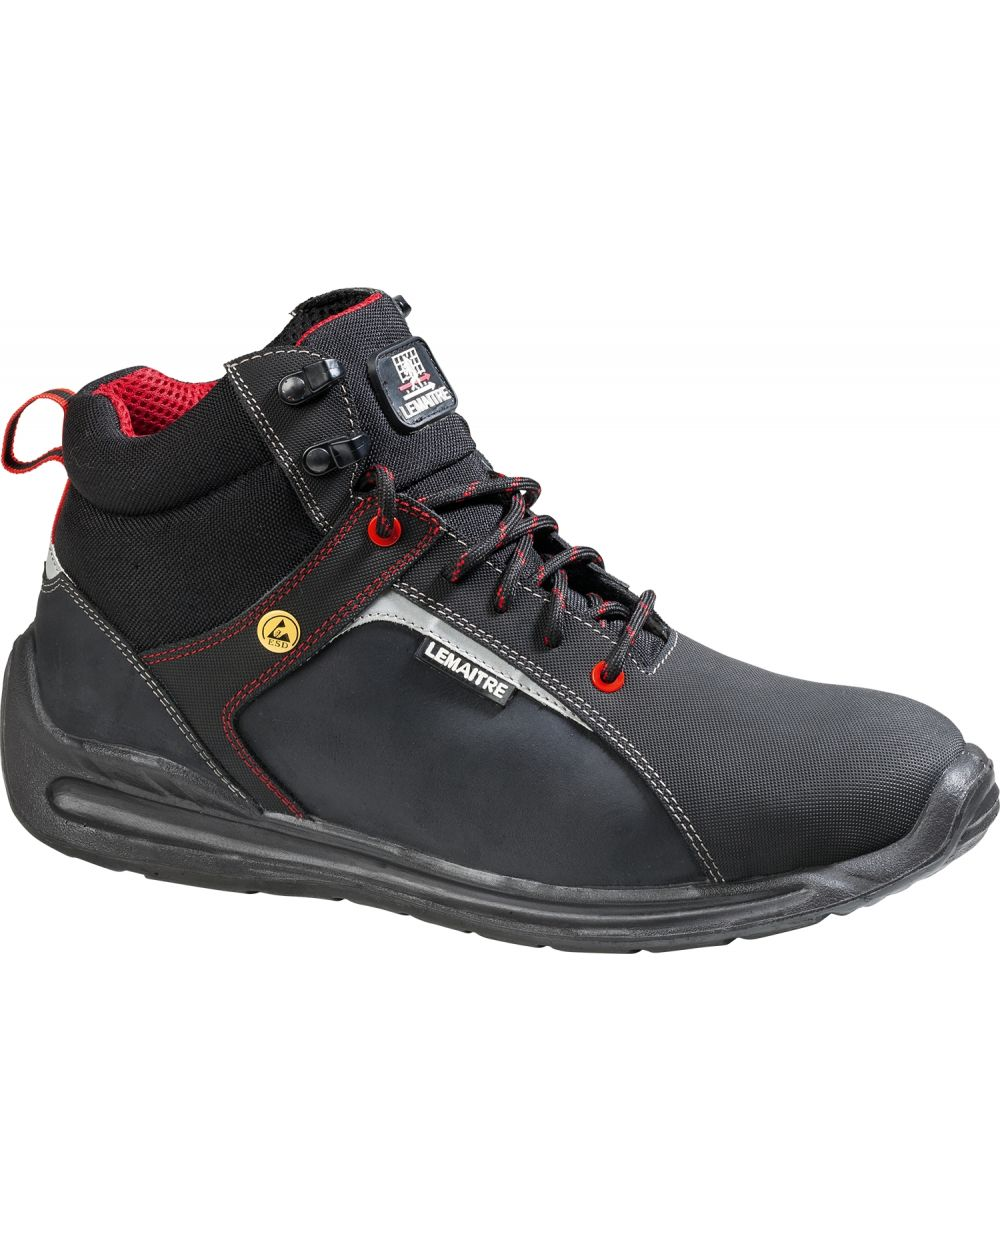 Super X High - ESD Safety Hiker